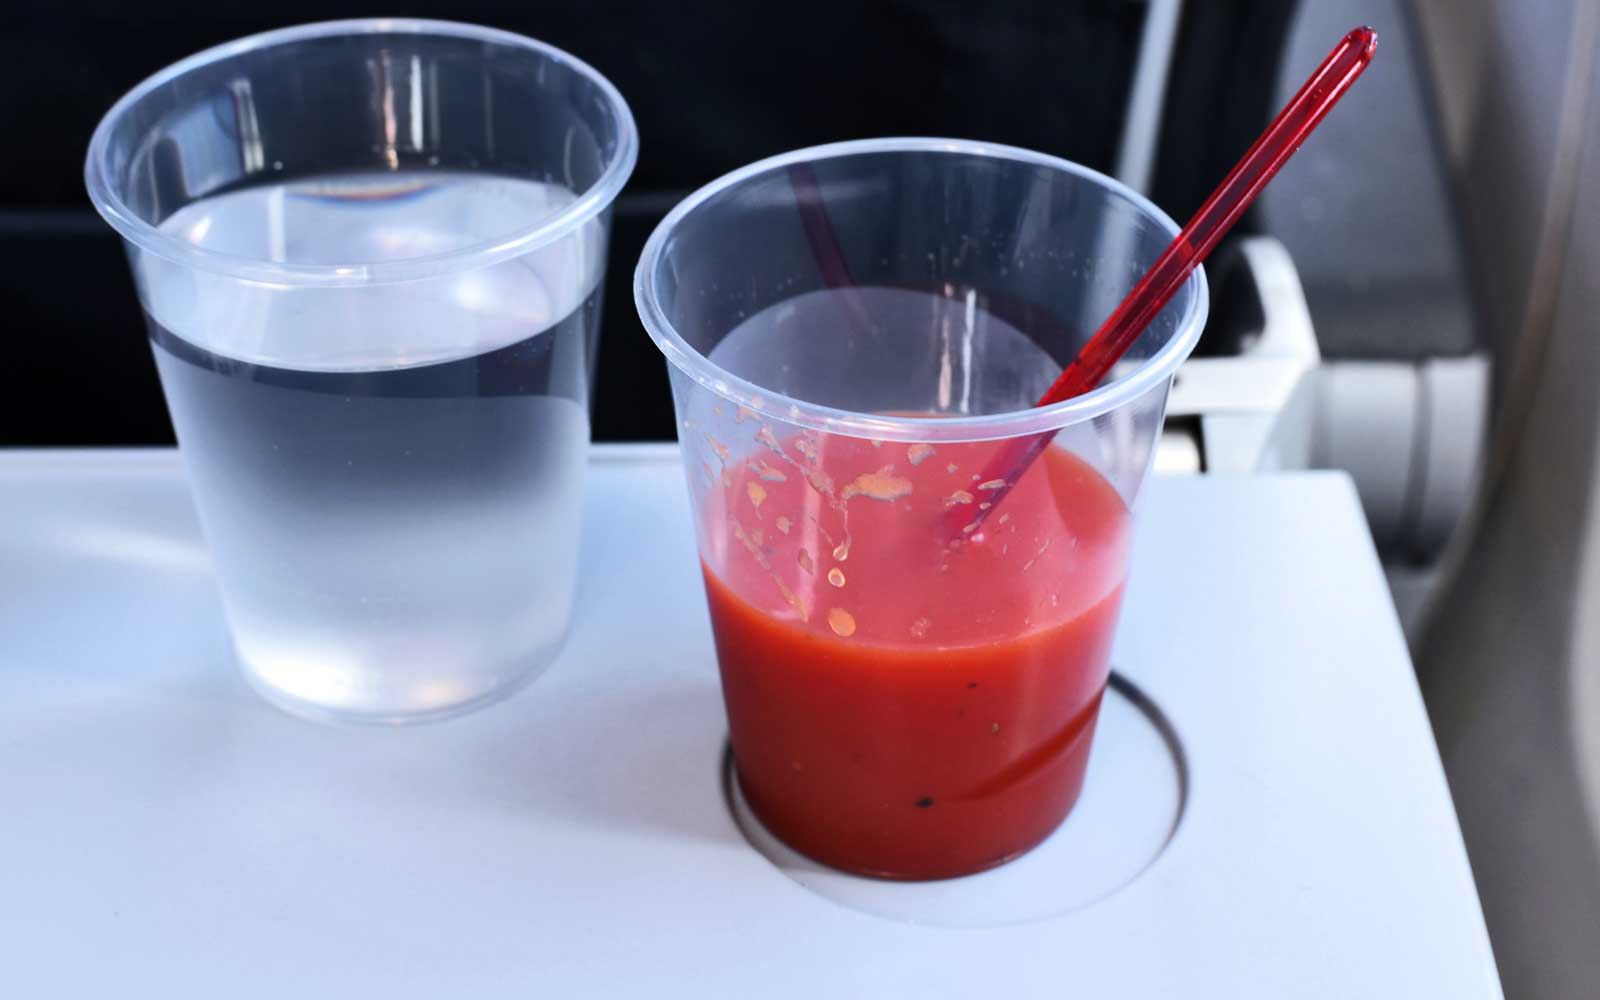 Tomato juice and water glass on a table in an airplane.